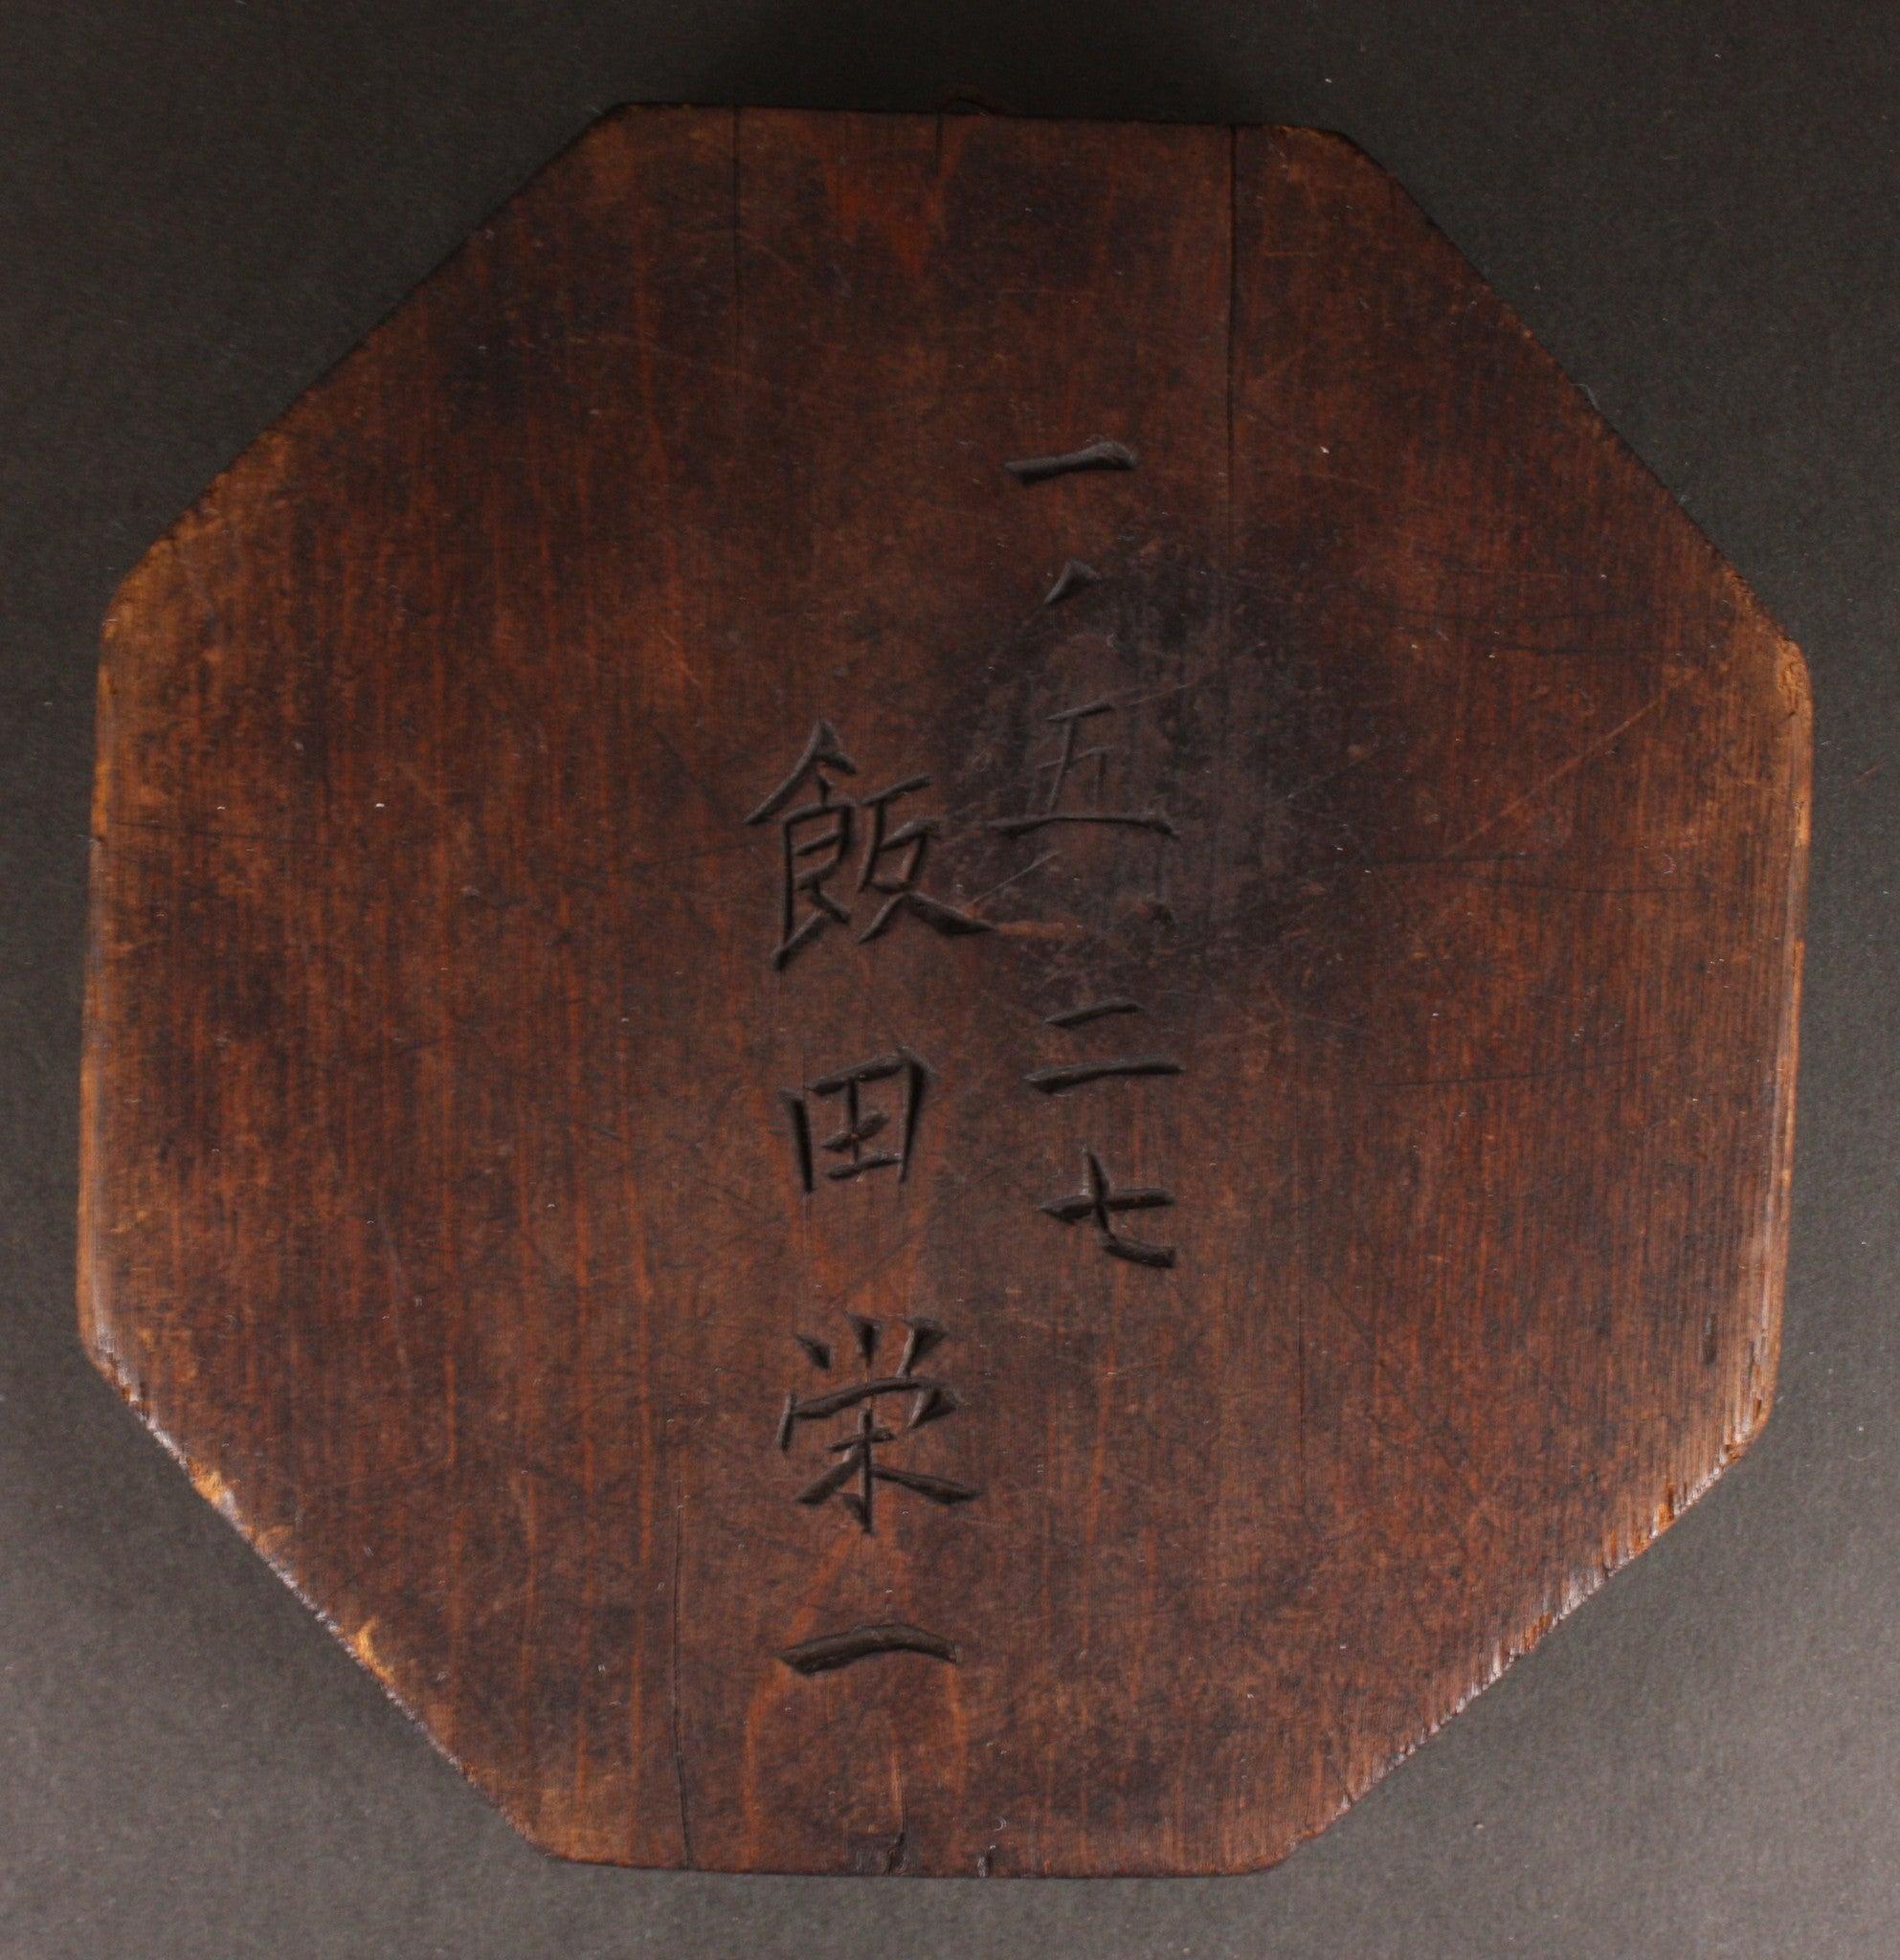 Antique Japanese Military Wood Carving Helmet Infantry Commemorative Plaque